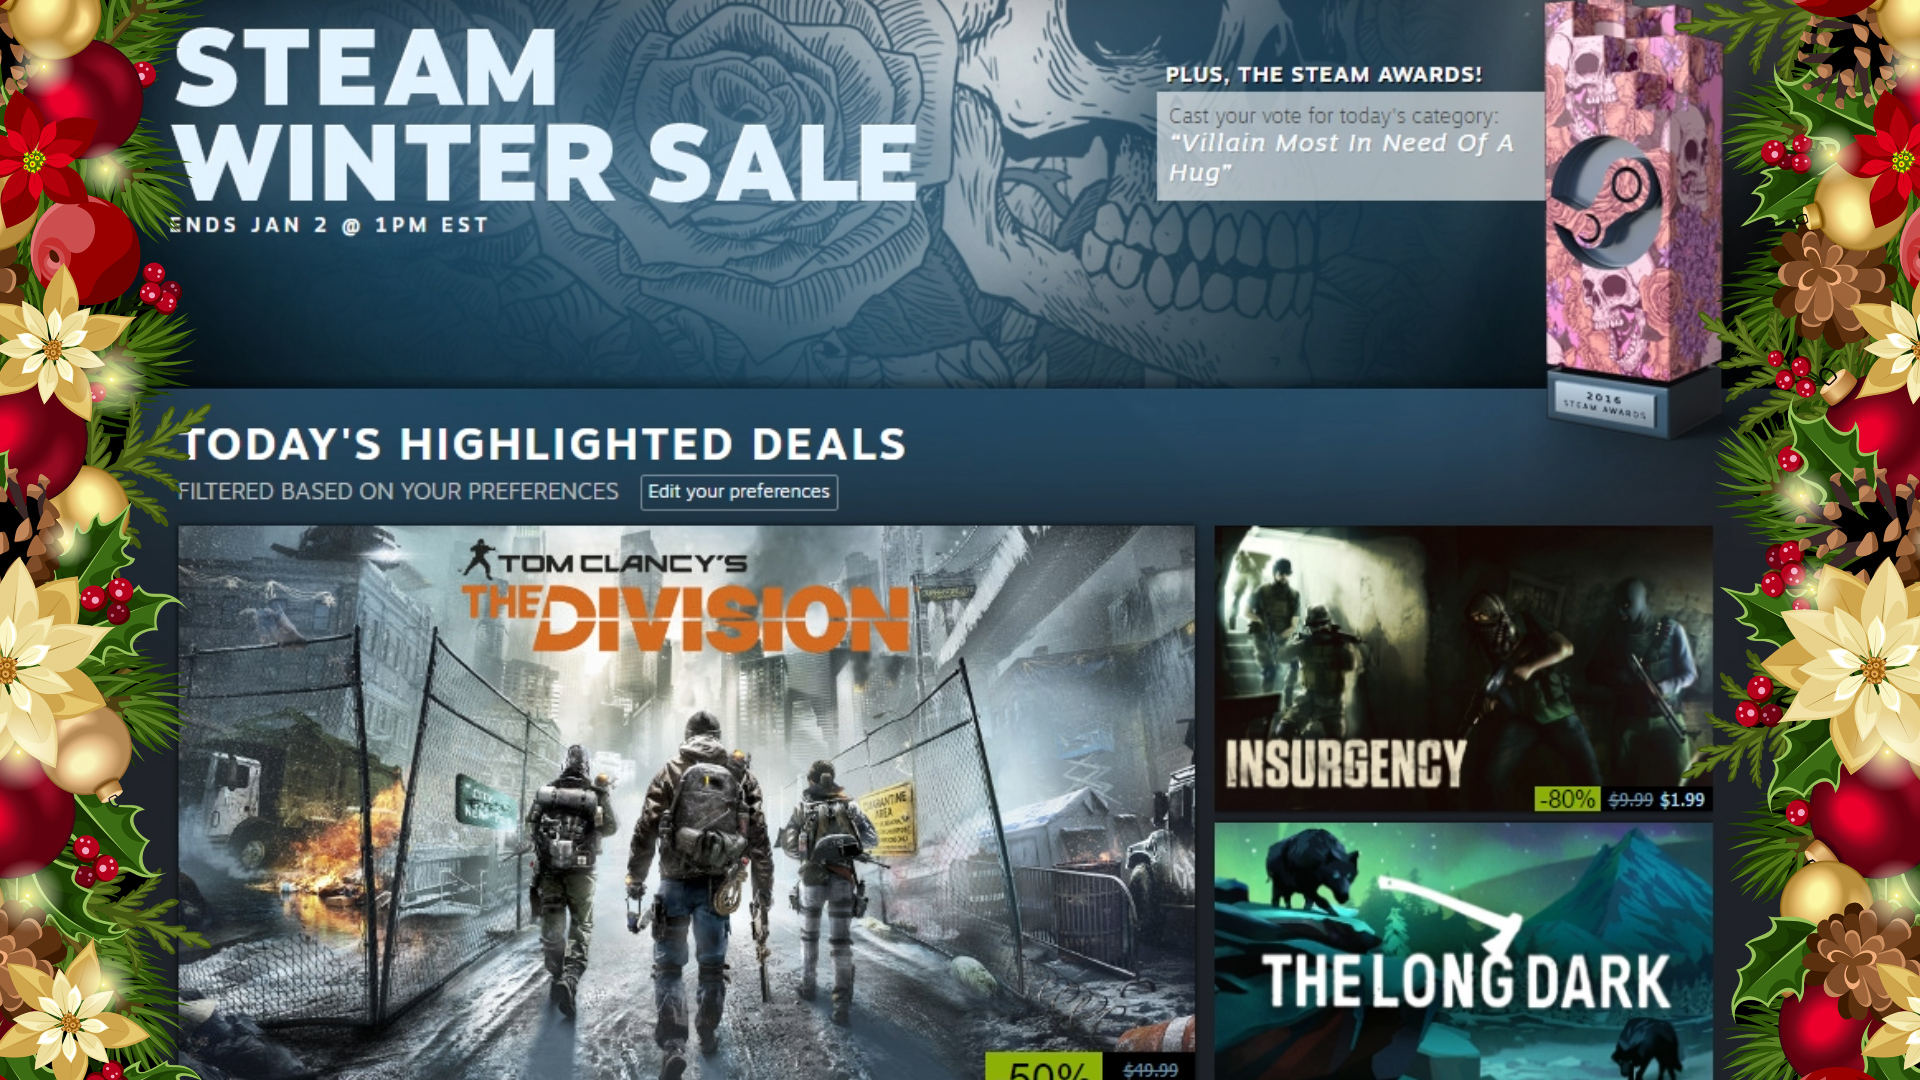 Steam Winter Sale 2016 now live, here are the highlights